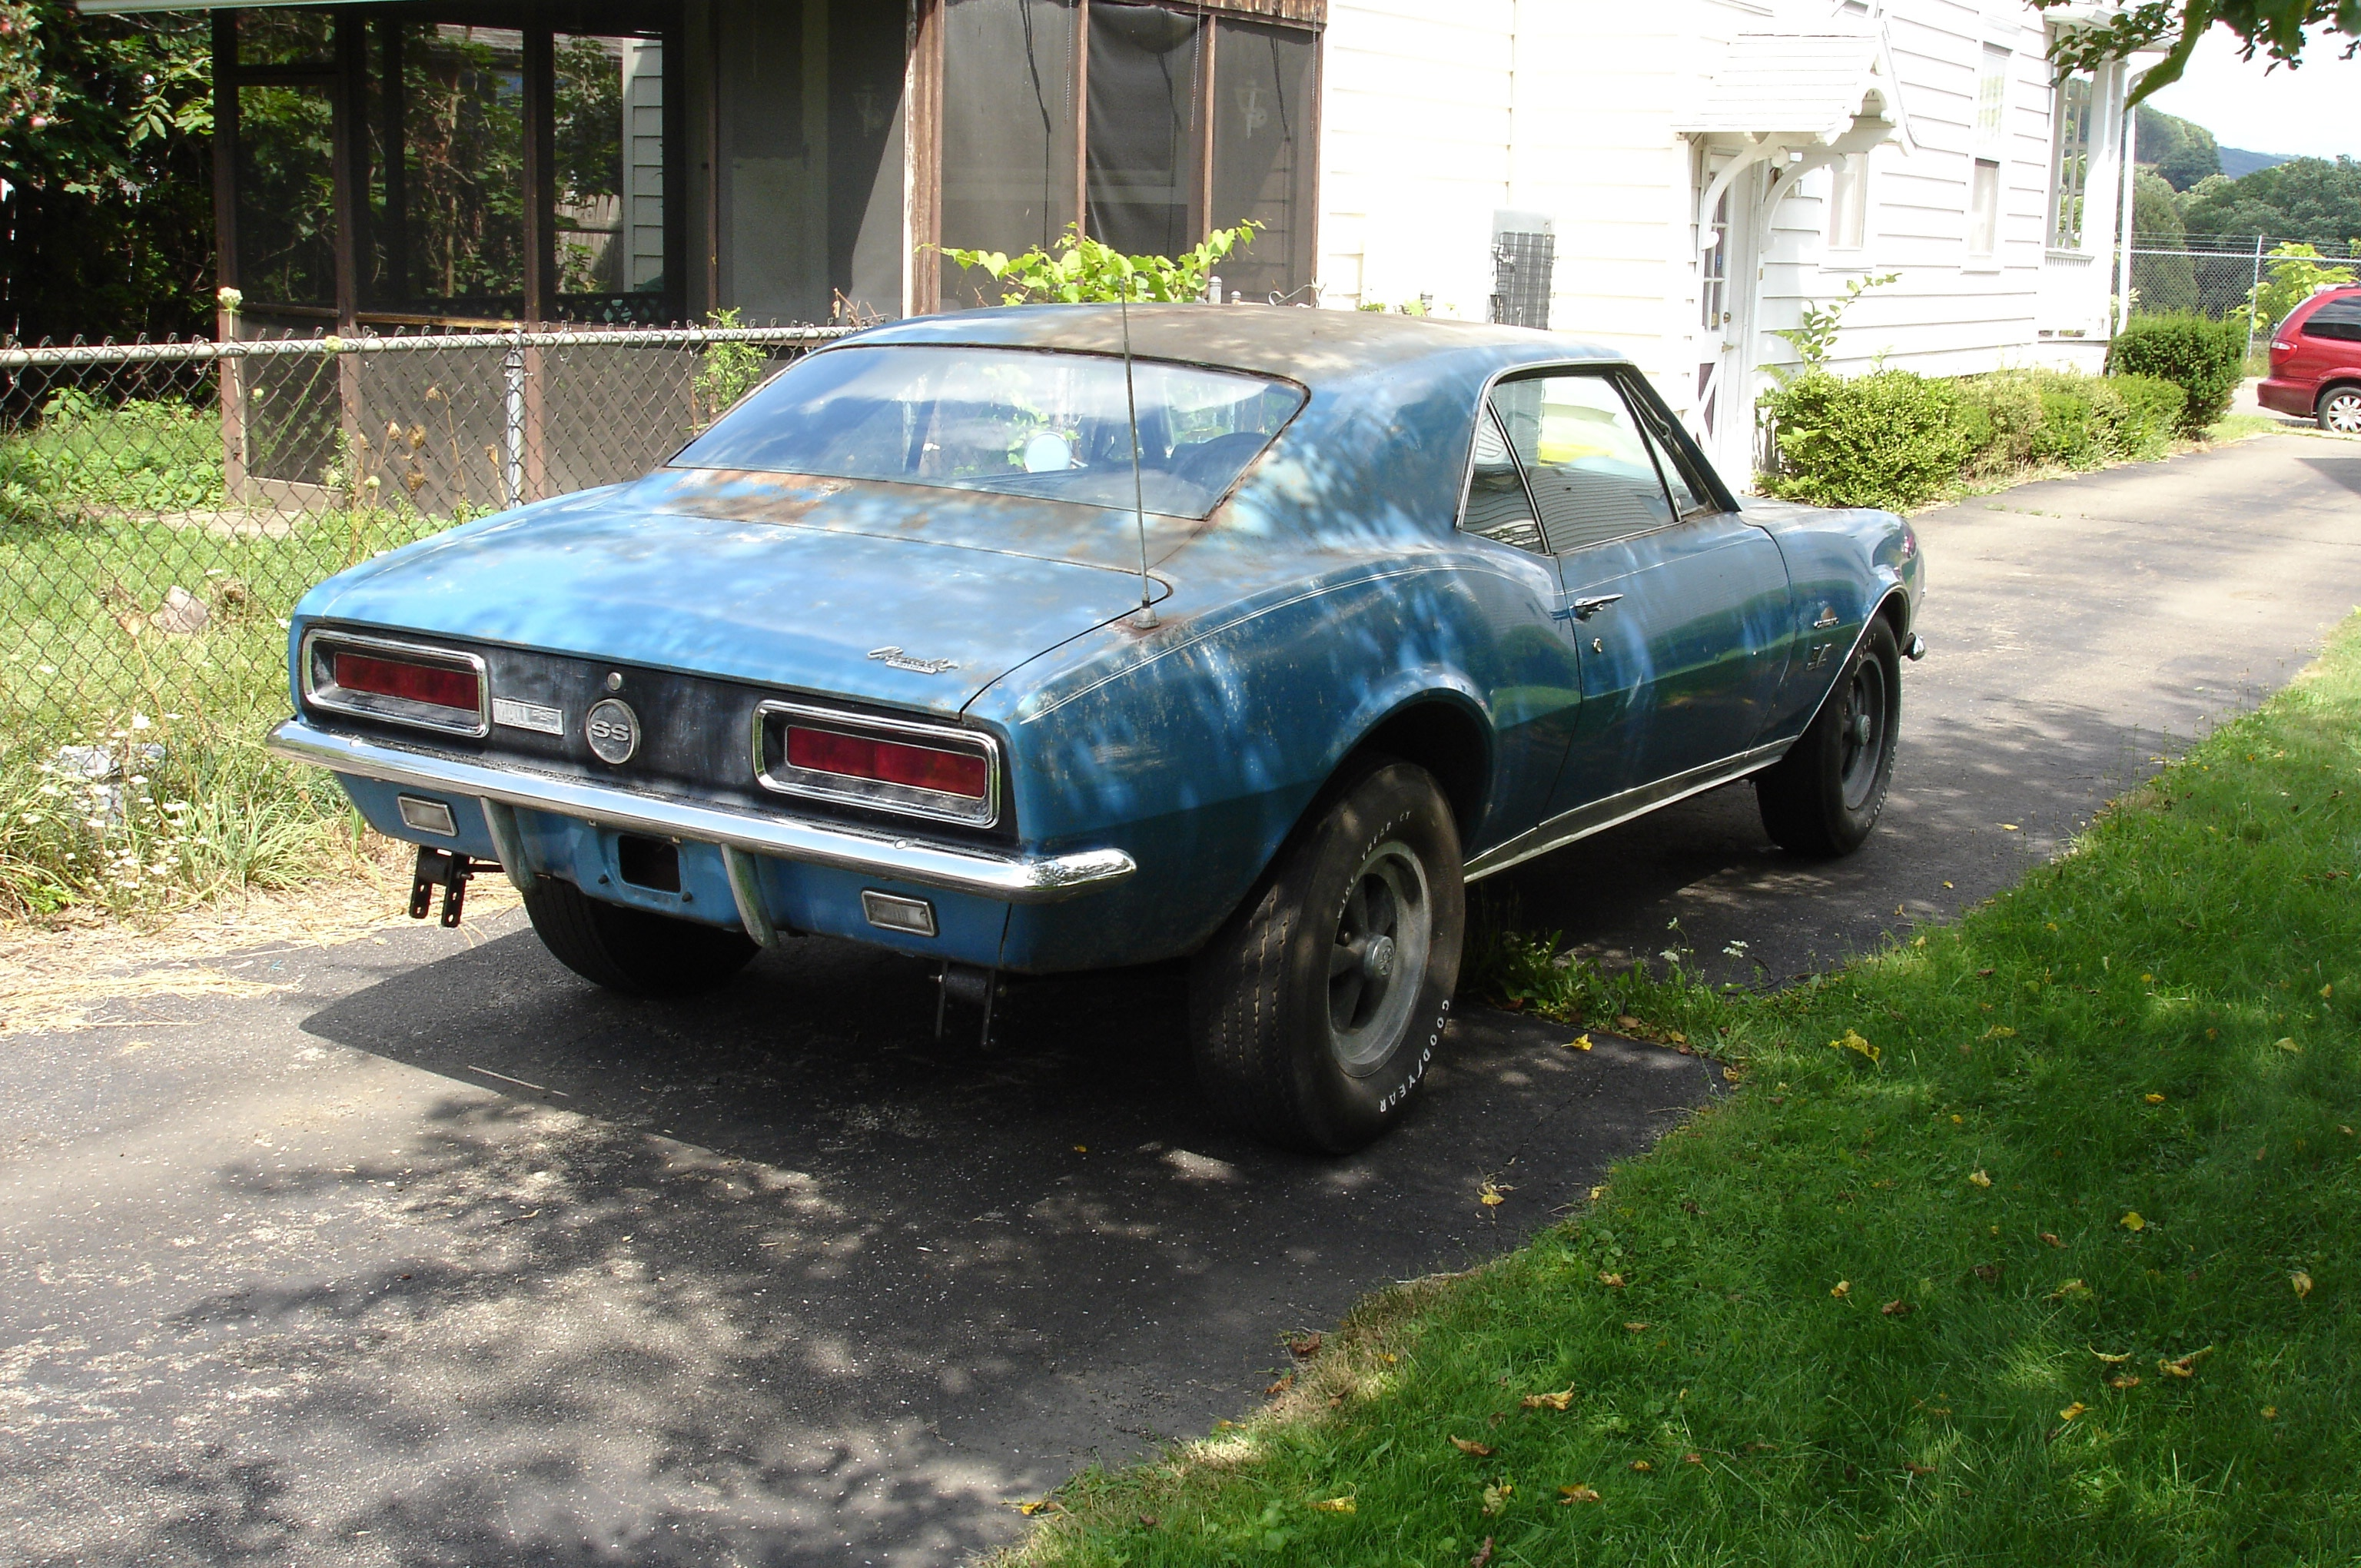 002 Rare Find Kachadourian 1967 Chevrolet Camaro Rear Three Quarter